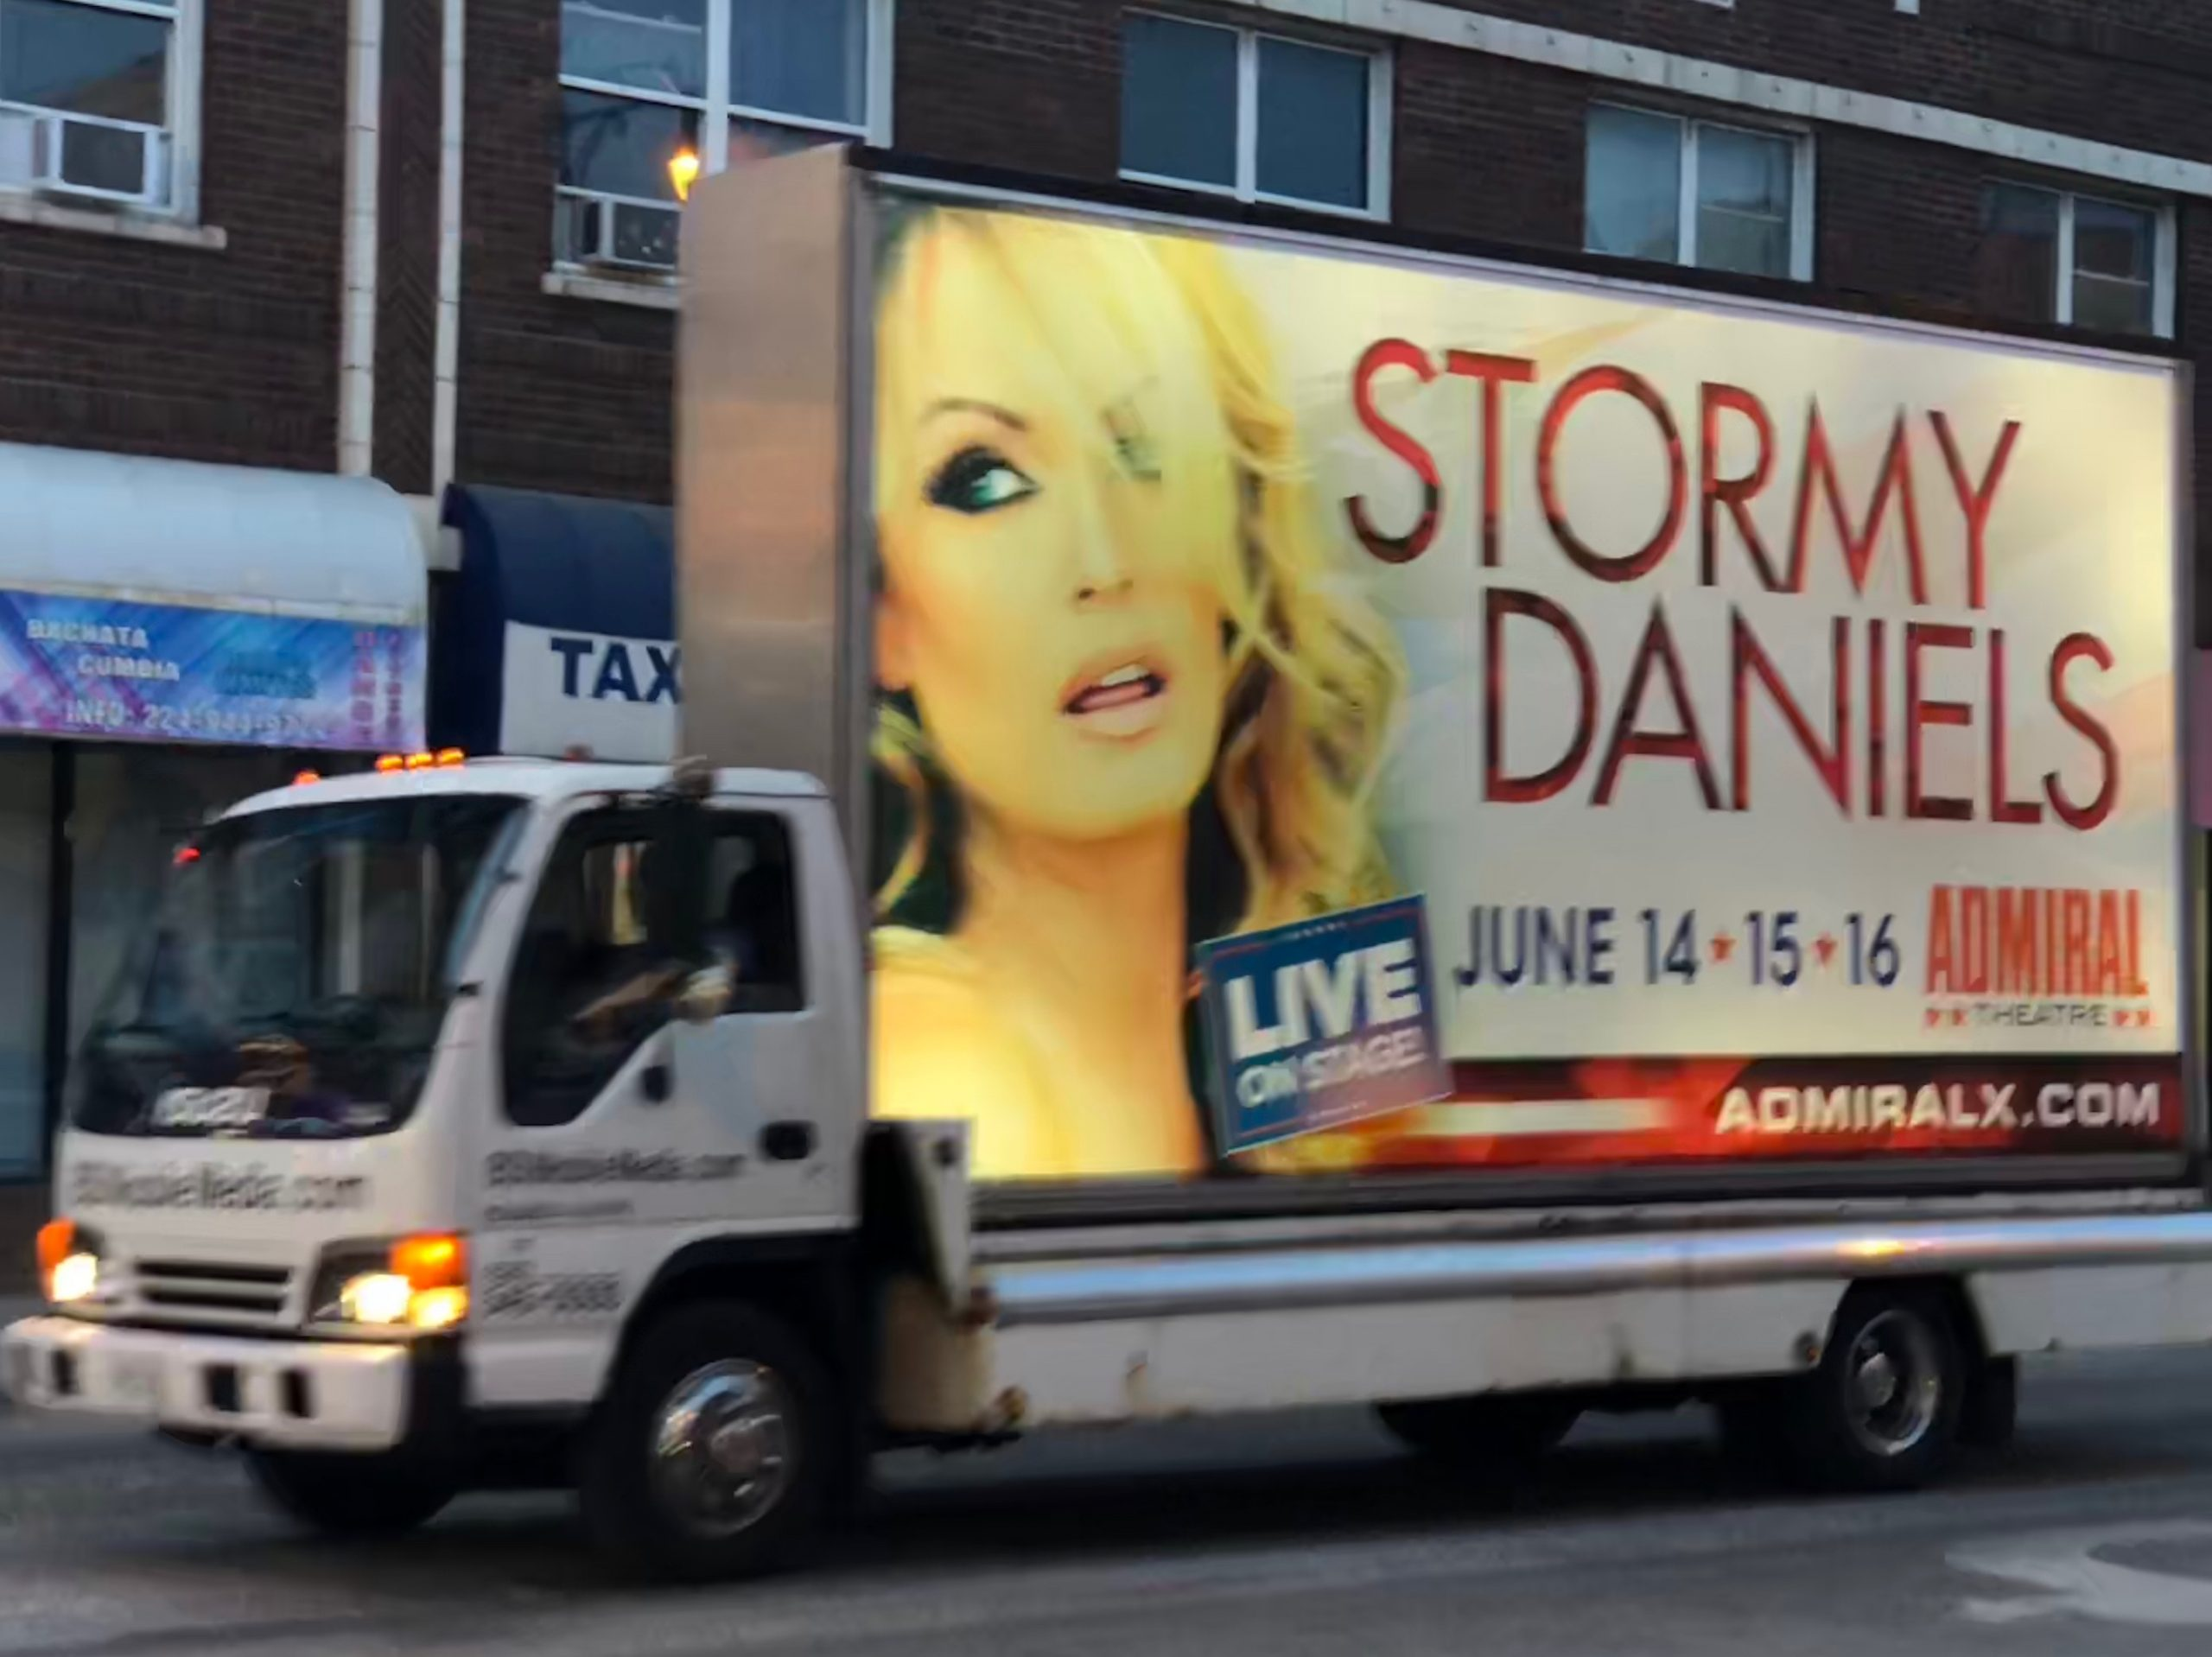 Ads for Stormy Daniels's show could be seen around the city.